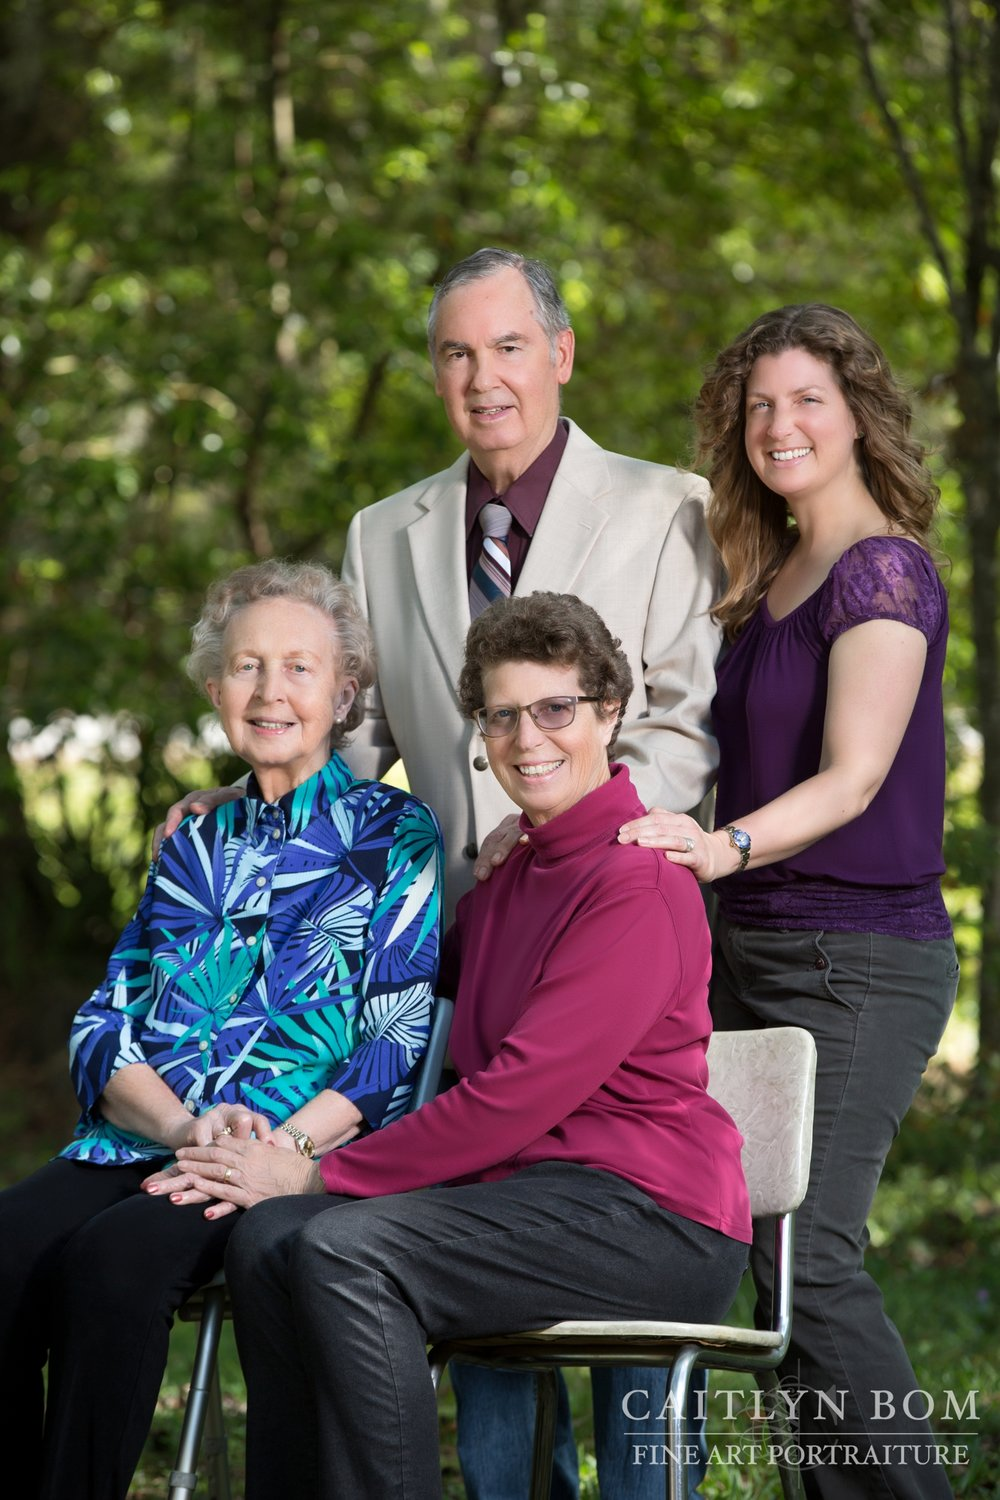 Jennifer Filzen's Family -- pictured clockwise from top: Larry Filzen, Jennifer Filzen, Lydia Colee Filzen, and Marilyn Varn Colee King